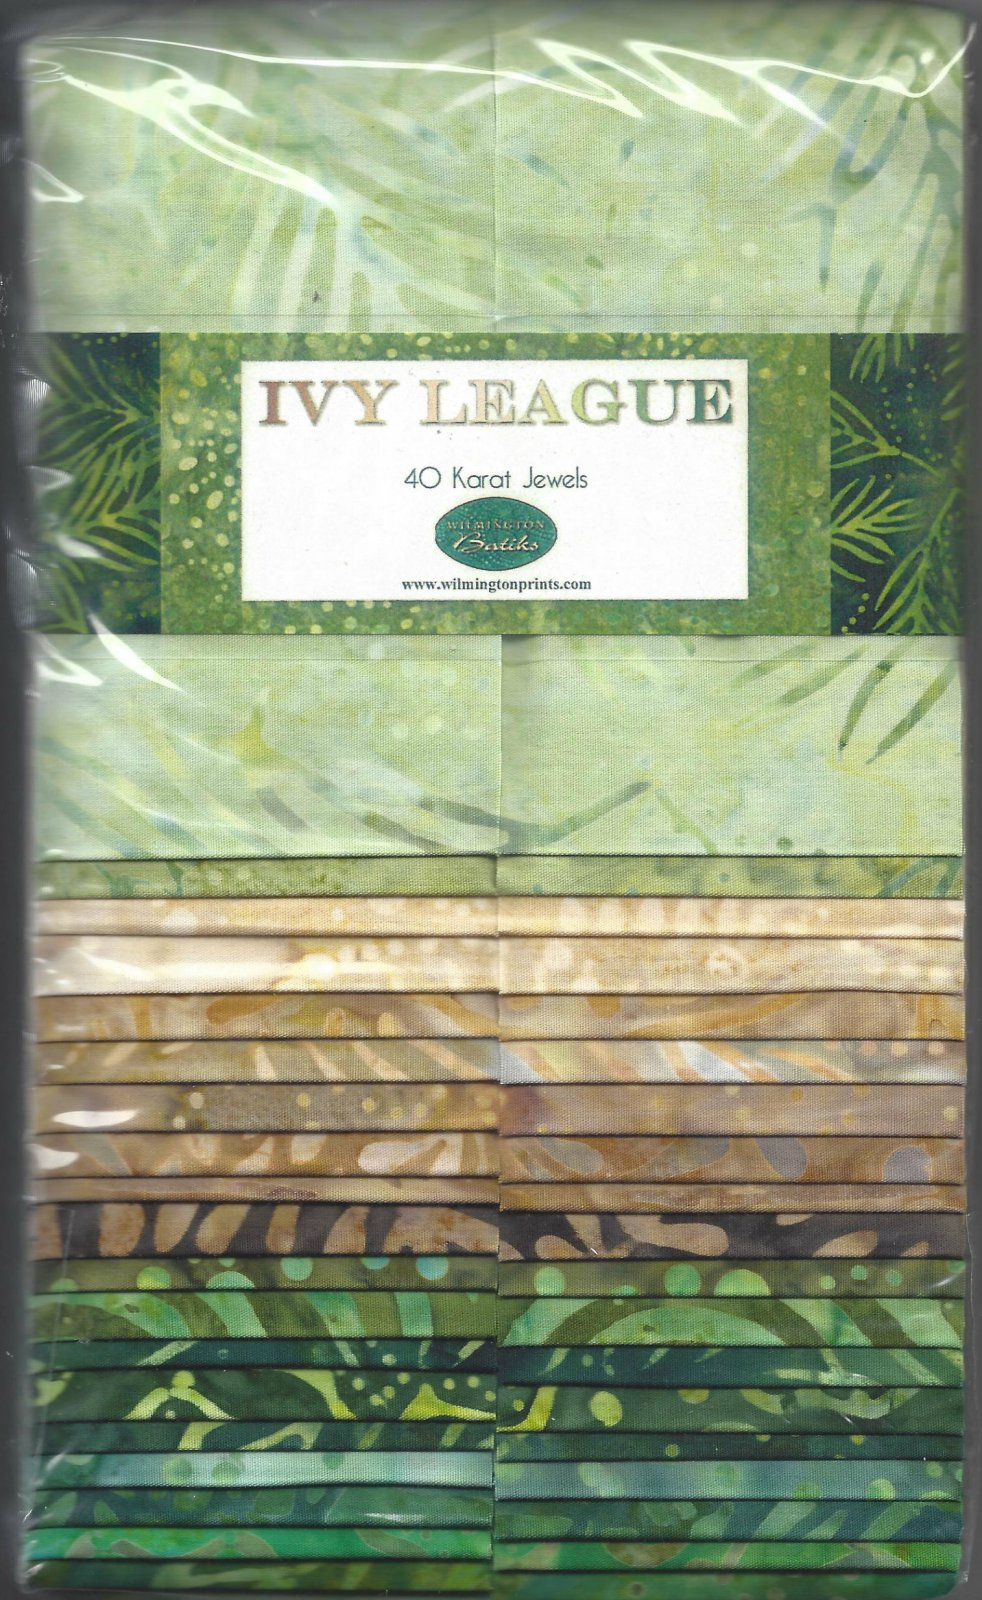 WIL  841-59-841 IVY LEAGUE